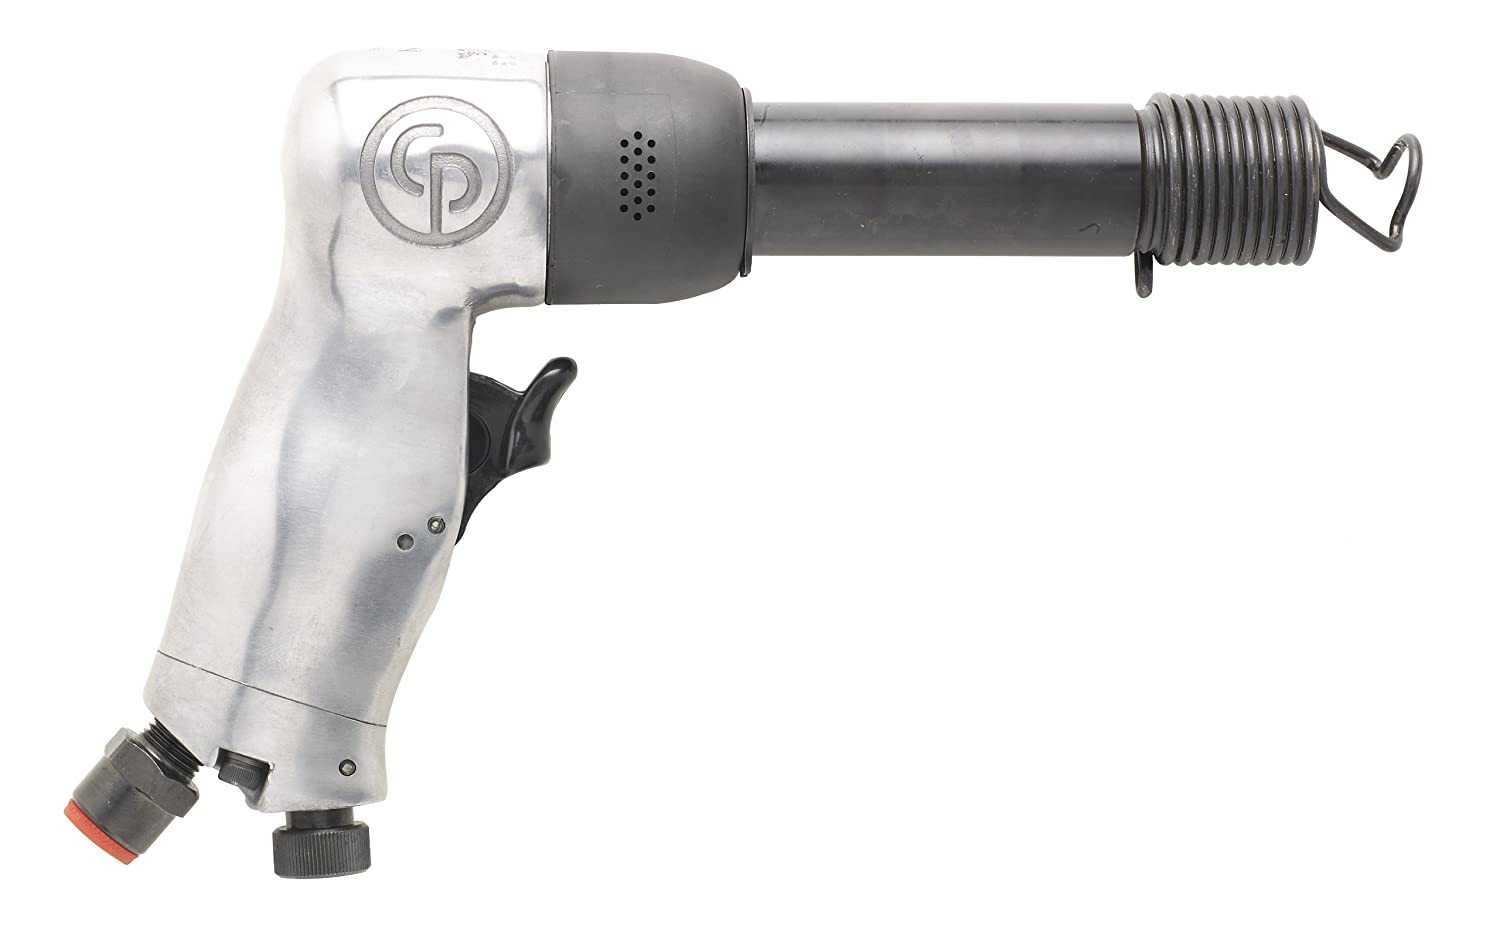 Chicago Pneumatic CP714 Heavy-Duty Air Hammer